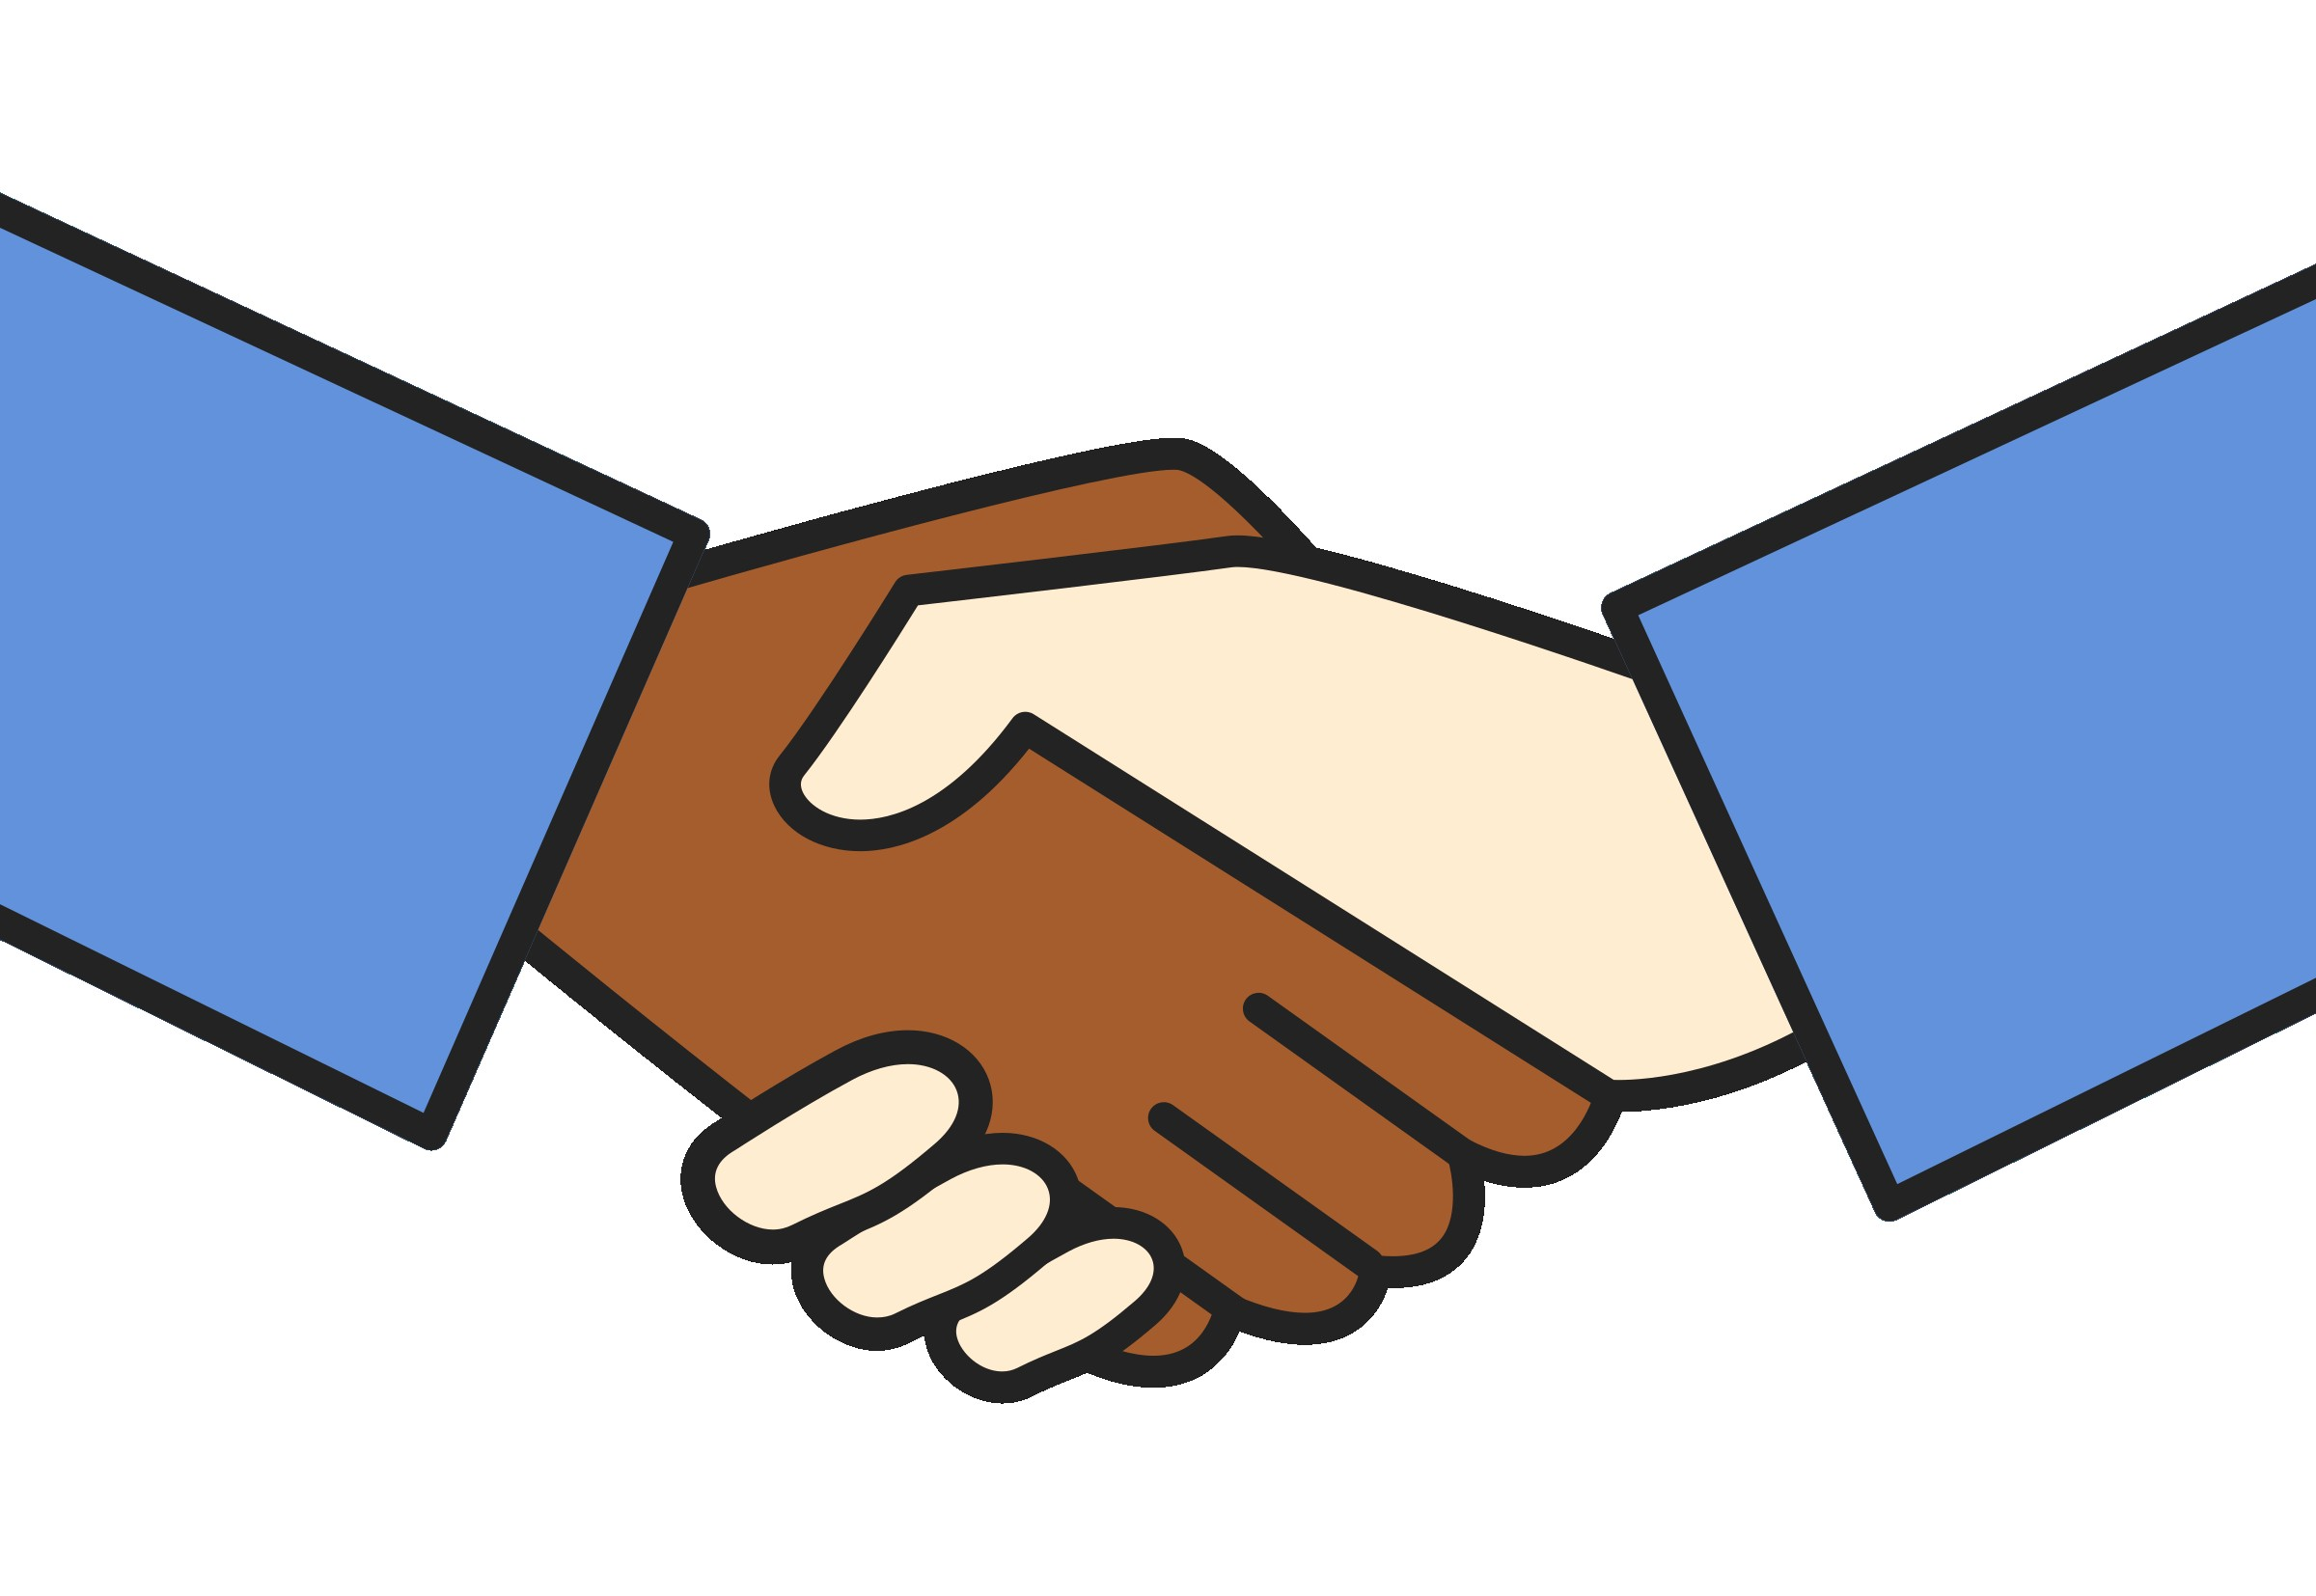 Handshake Clipart Group (+), HD Clipart.